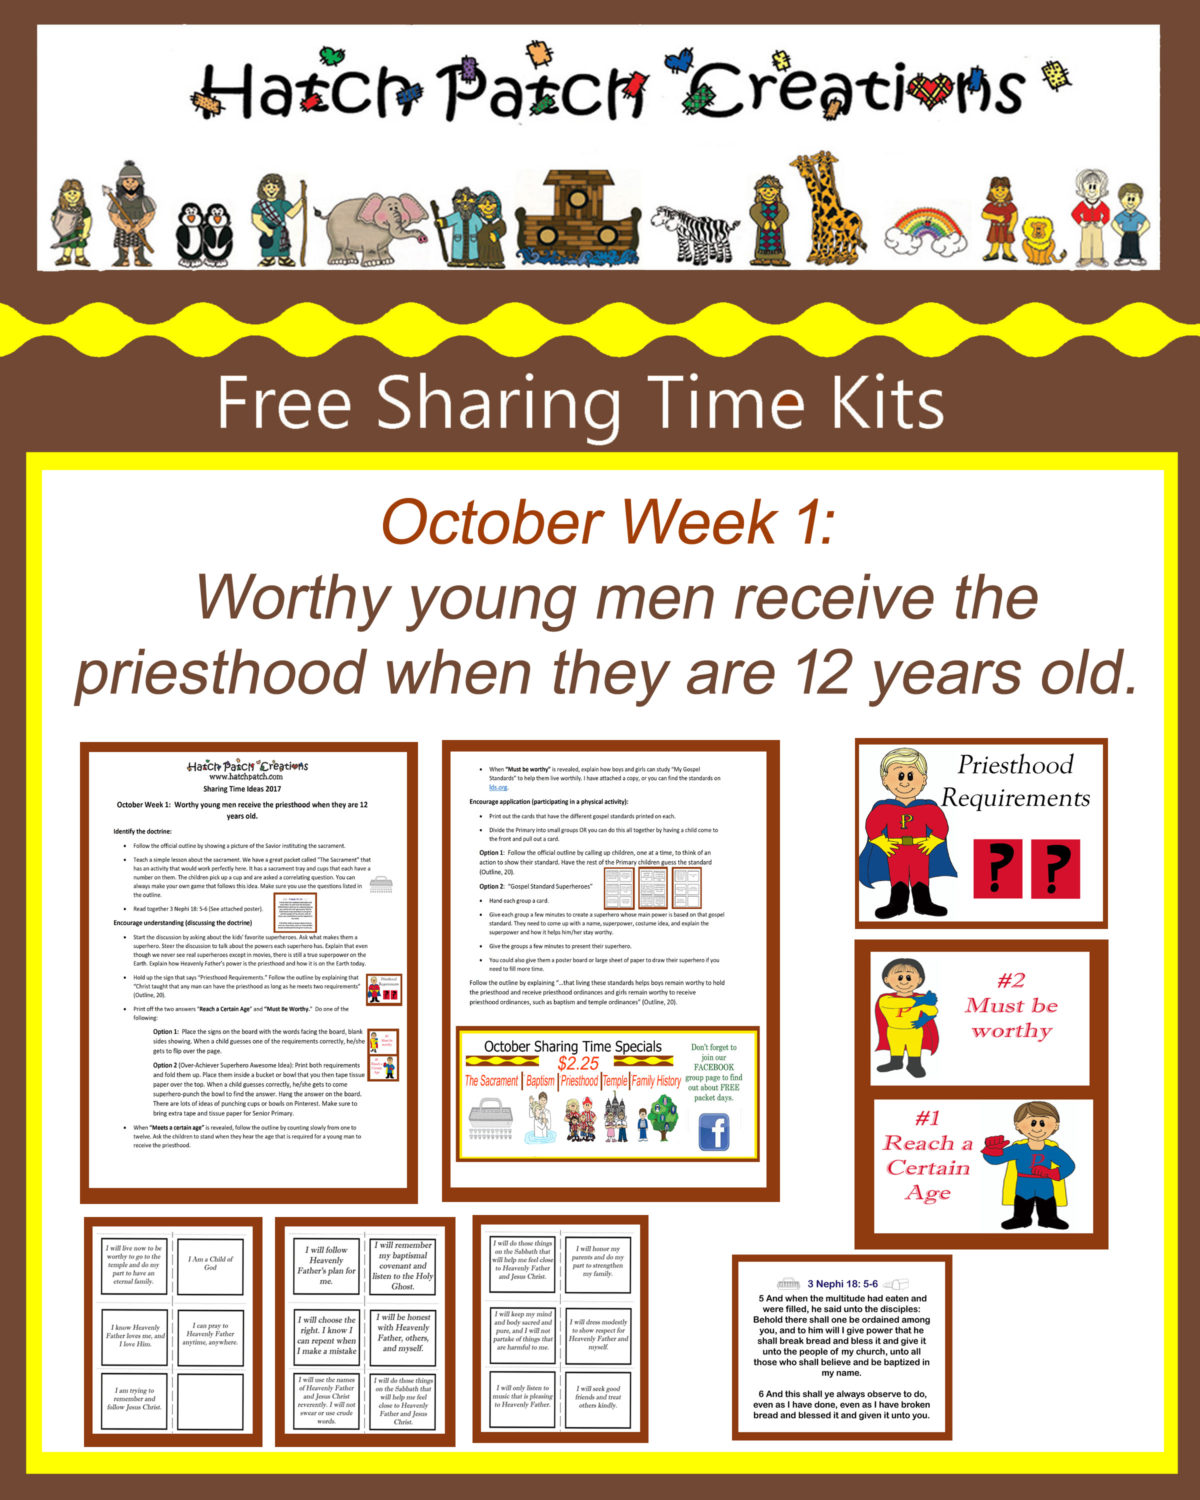 10- October 2017 Sharing Time Ideas: Blessings of the Priesthood Are Available to All